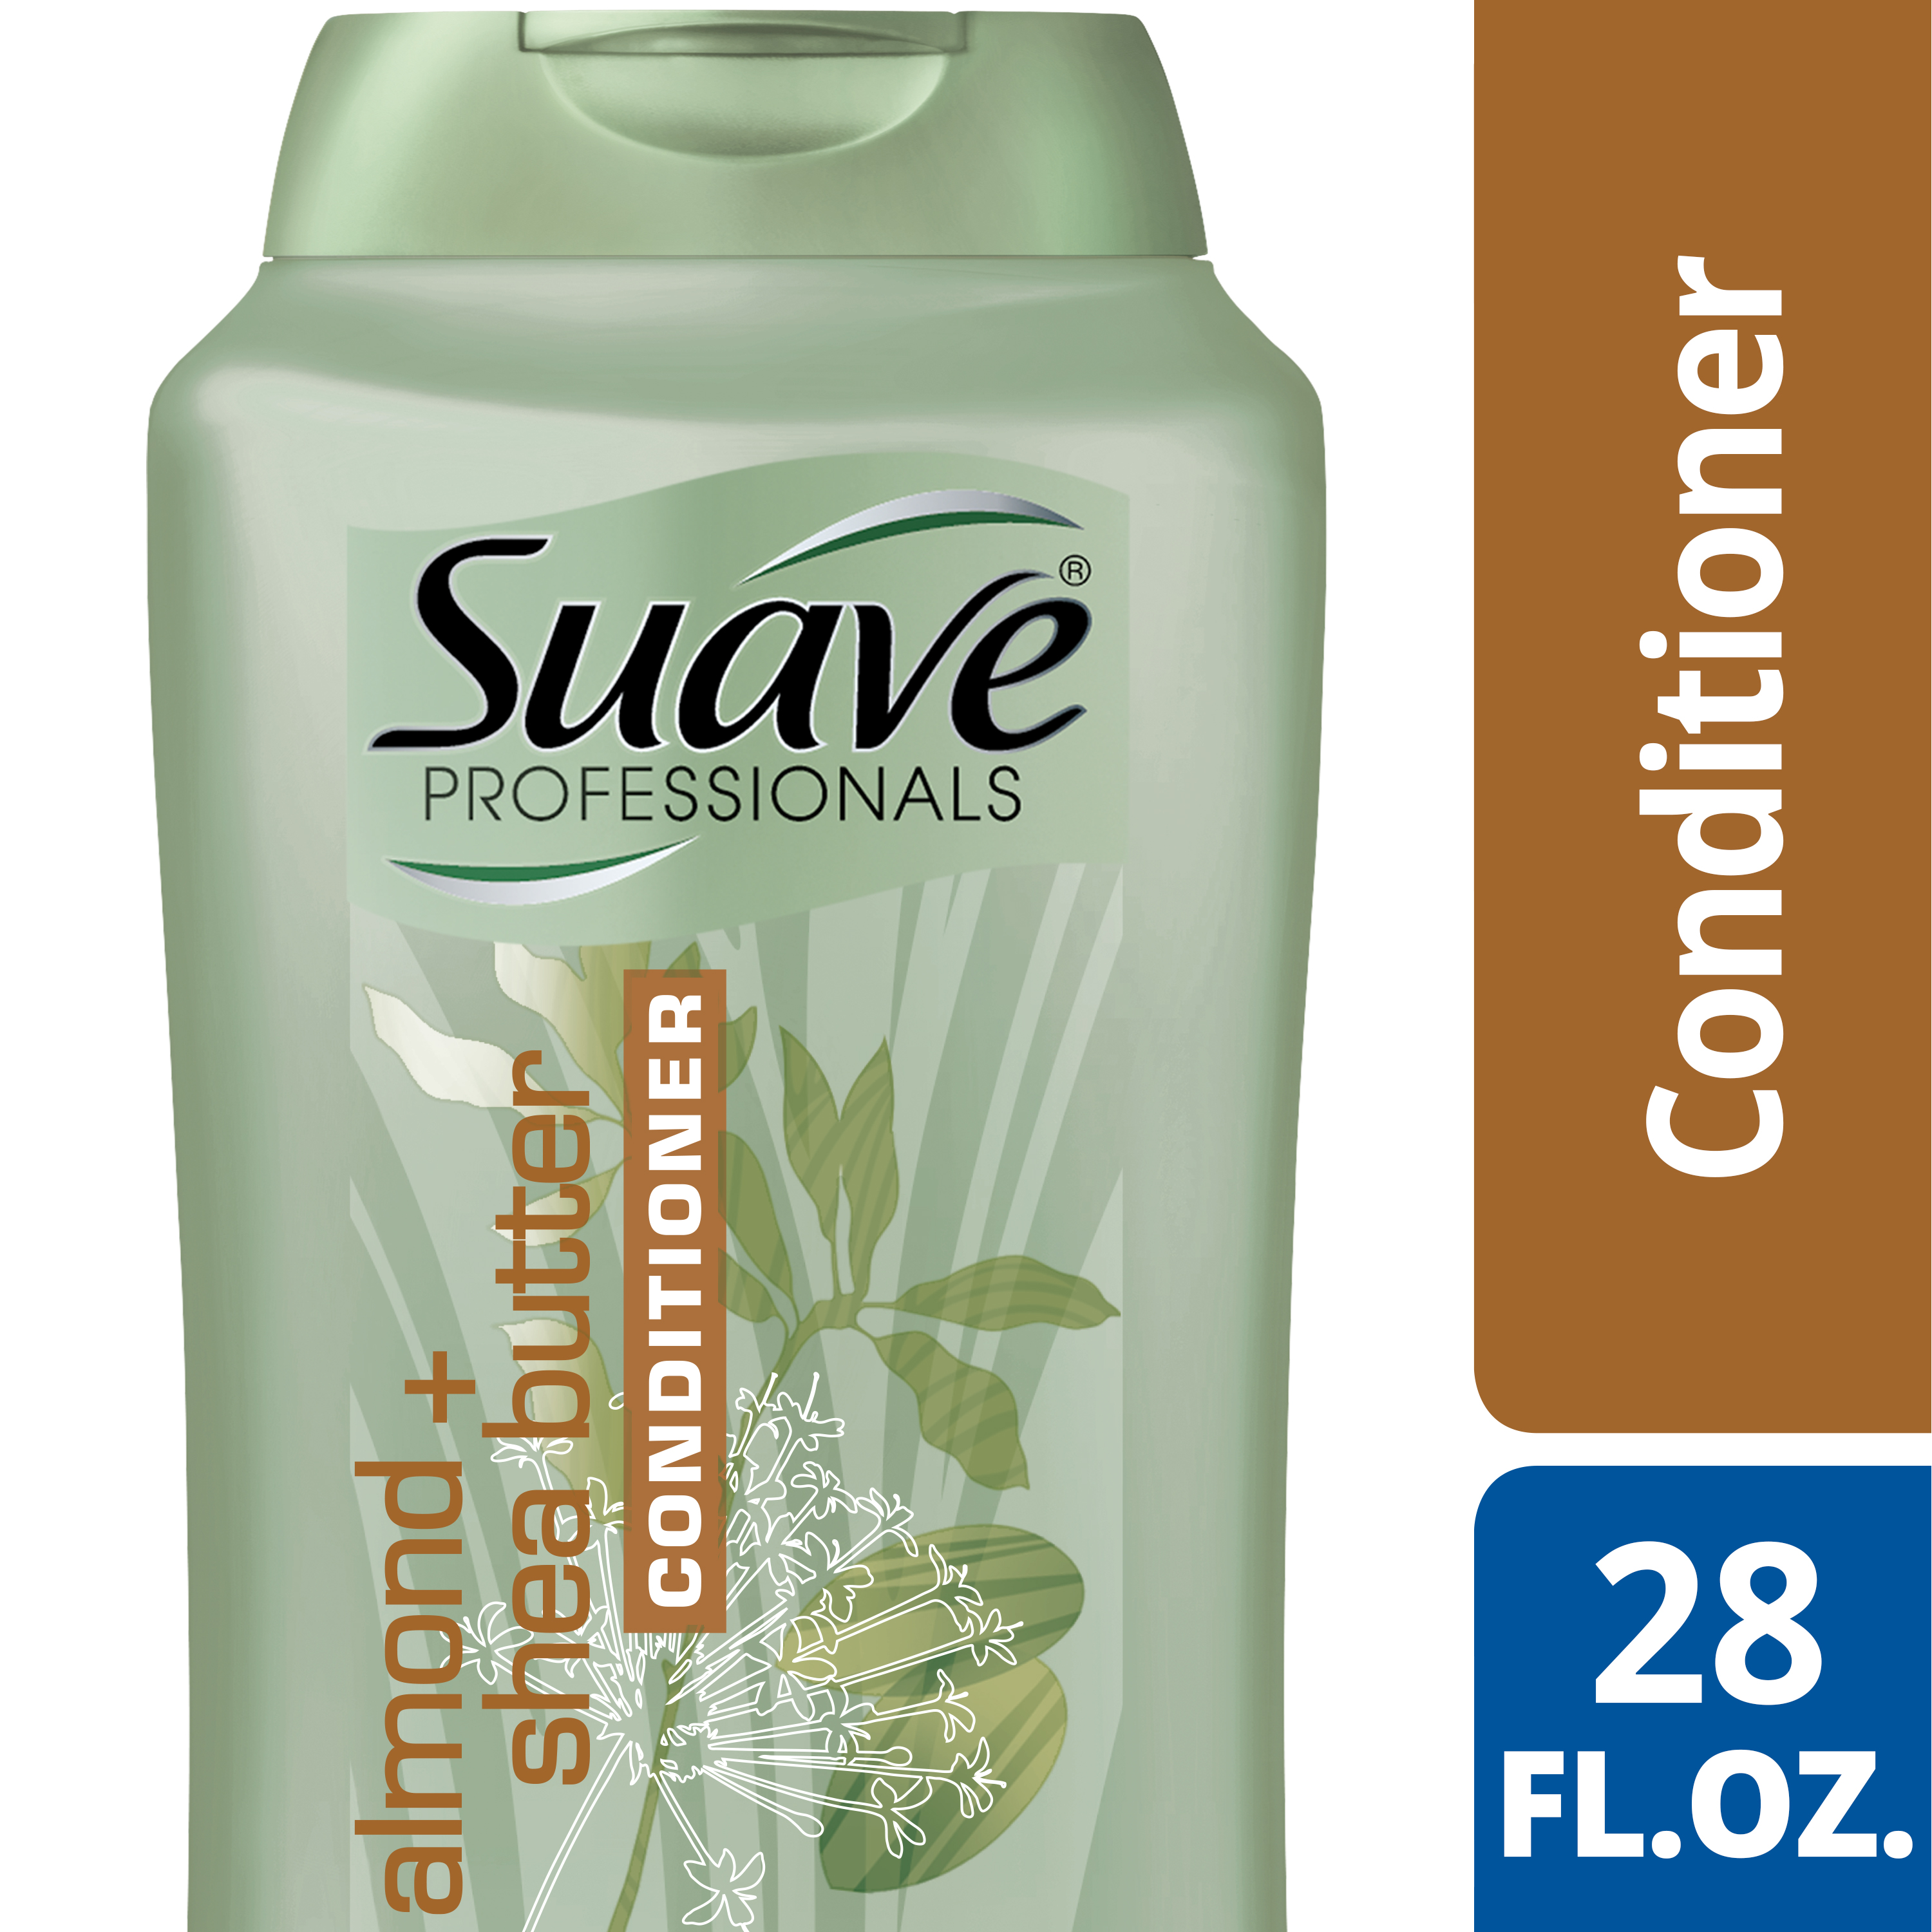 Suave Professionals Almond + Shea Butter Conditioner, 28 oz